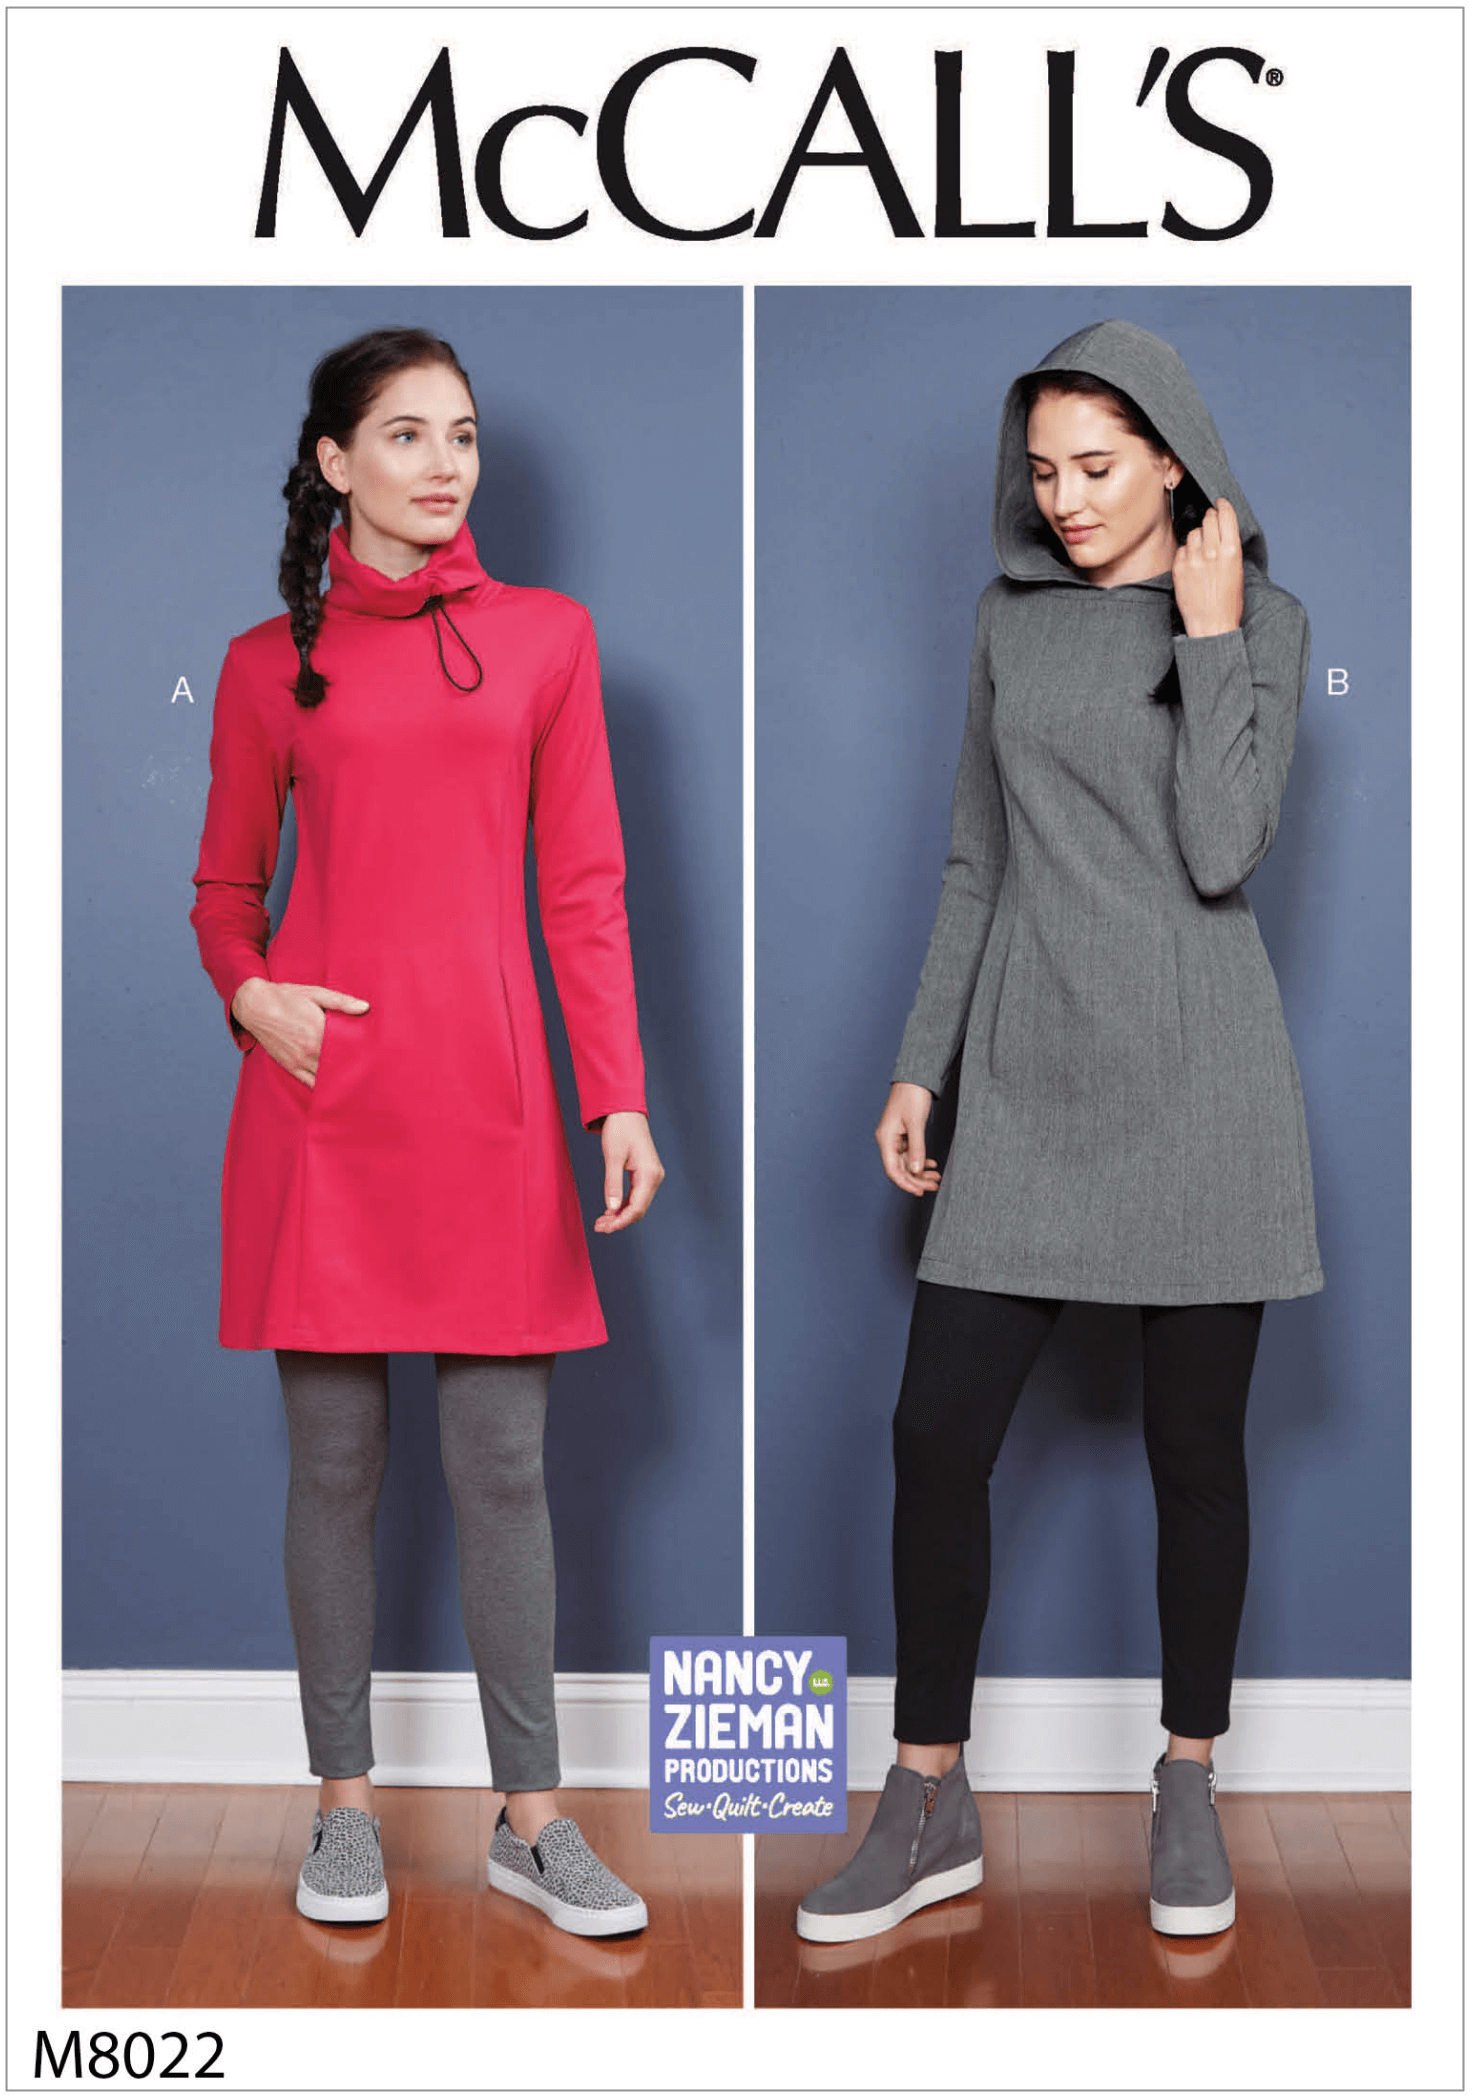 McCall's M8022 Dress and Tunic Sewing Pattern by Nancy Zieman Productions for The McCall Pattern Company